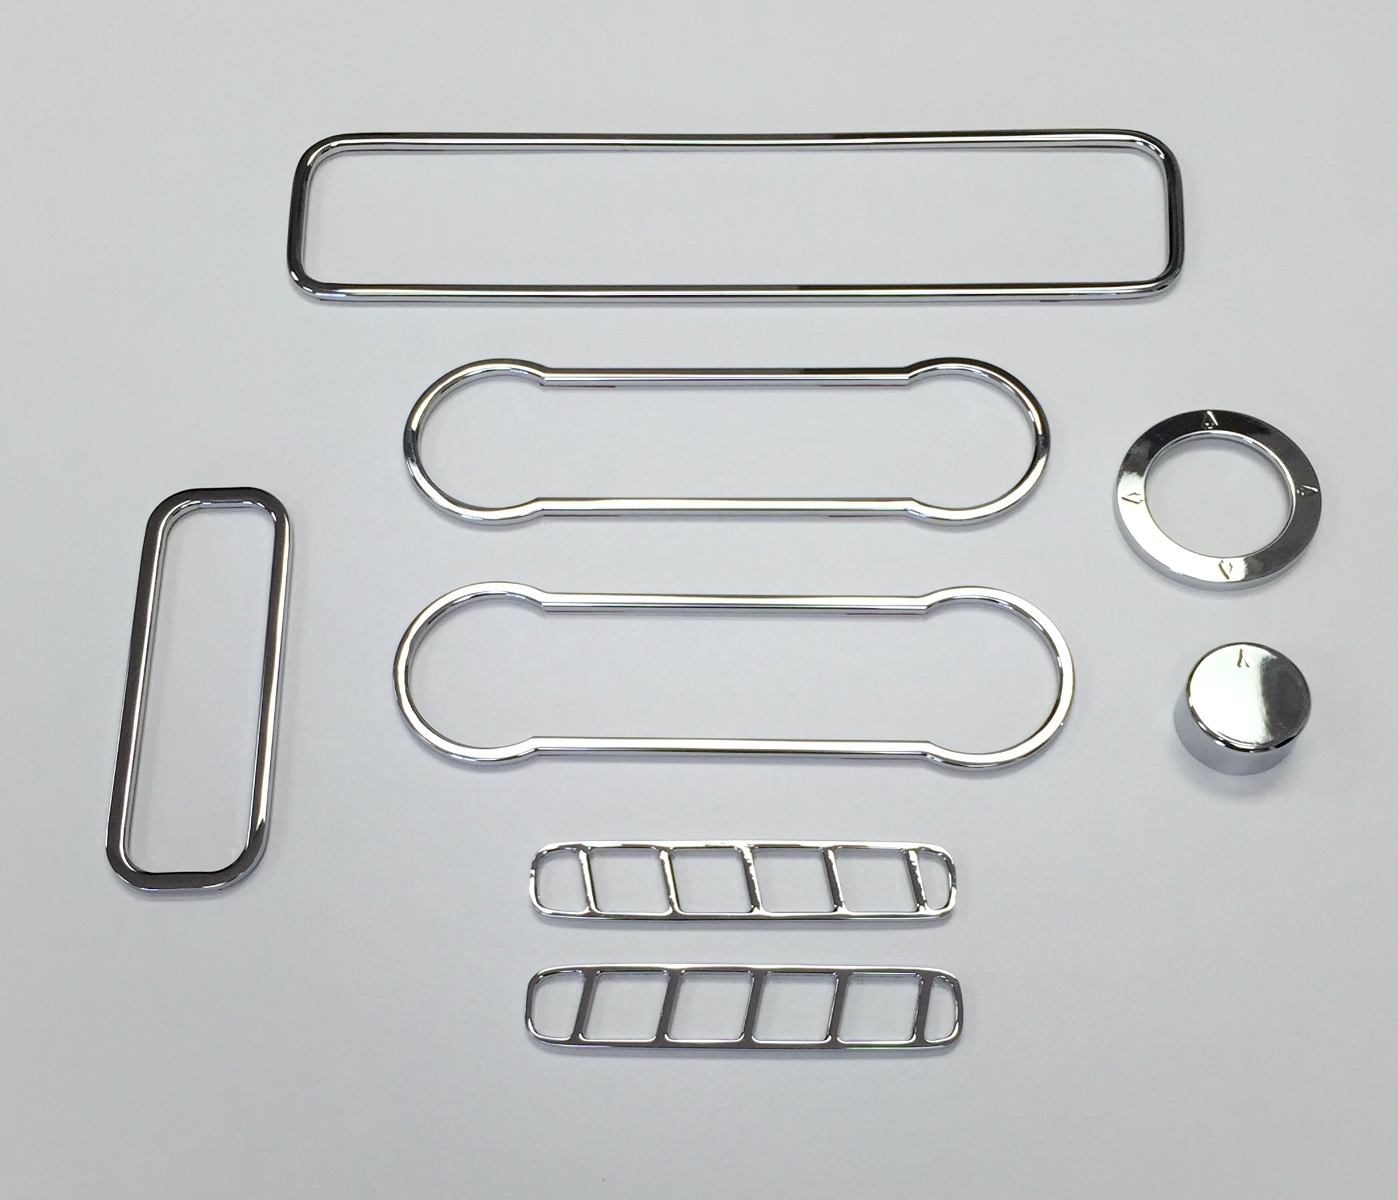 2010 2014 Ford Mustang Chrome Billet 8pc Interior Trim Kit Pirate Mfg